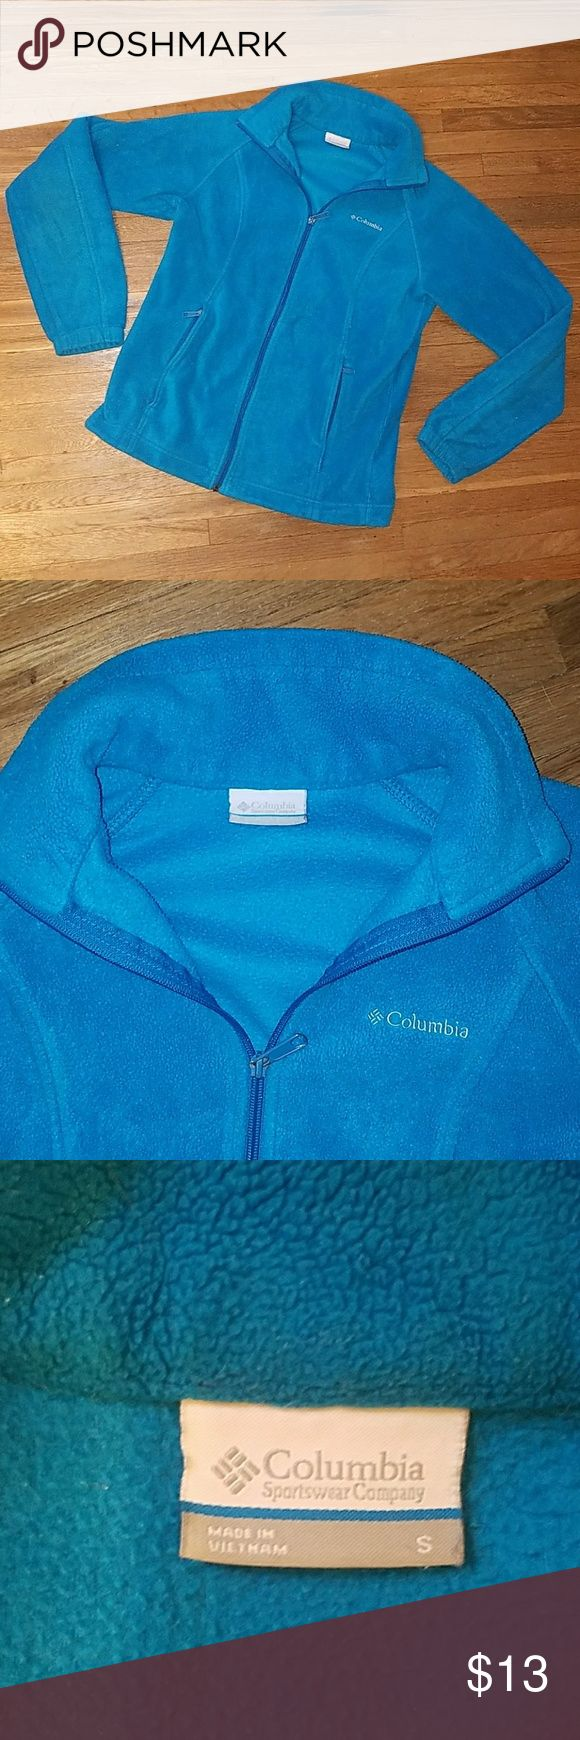 Small blue columbia zip up Women's size small blue columbia fleece zip up jacket. No stains or holes. Columbia Jackets & Coats